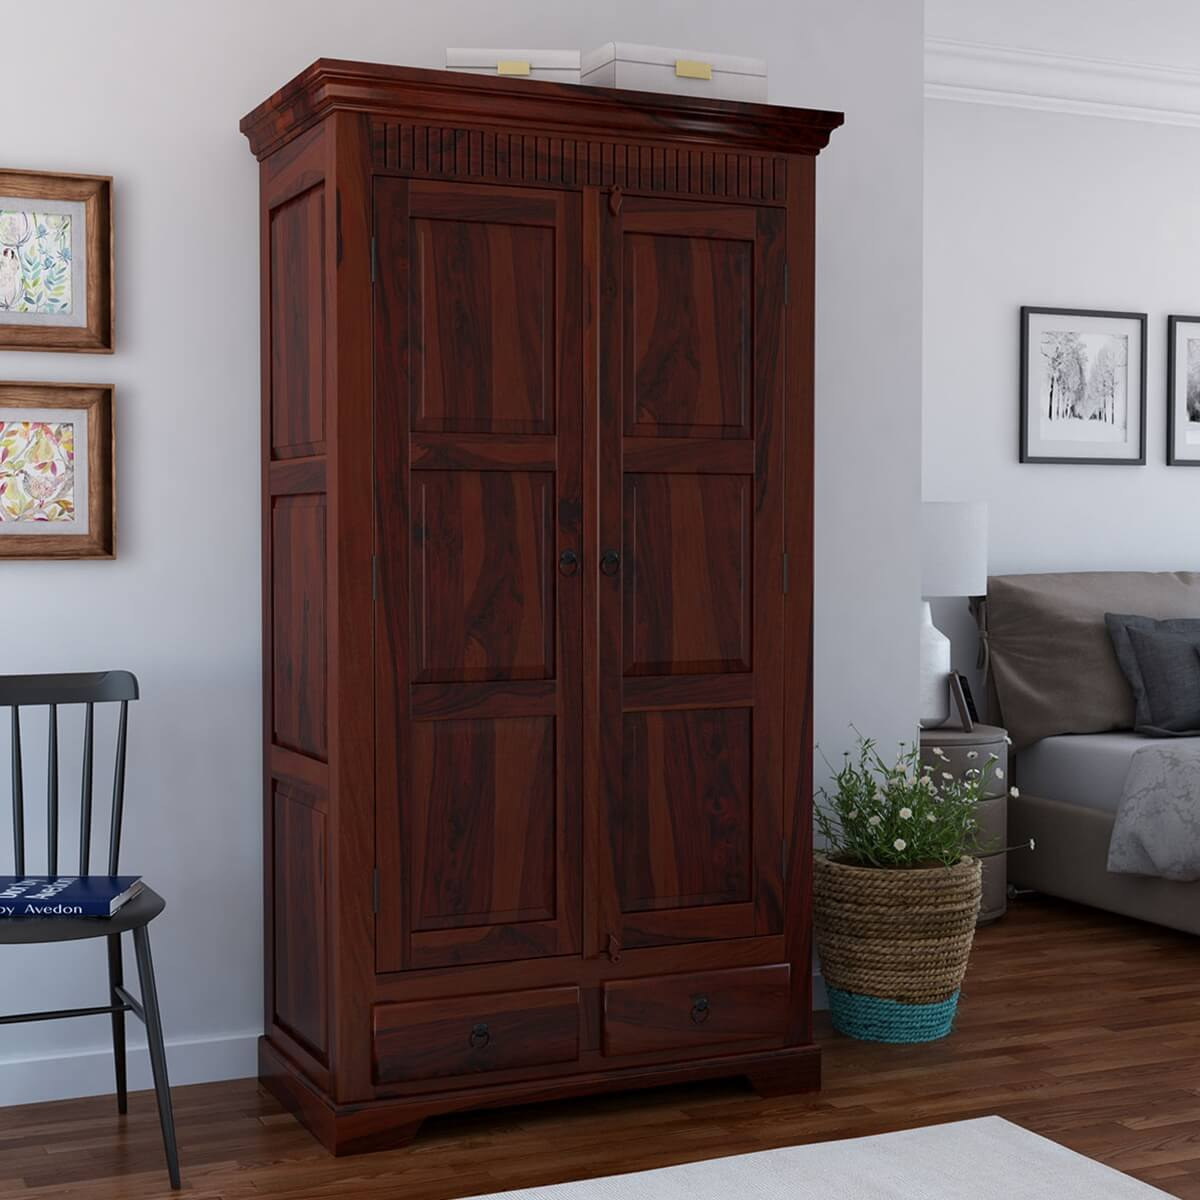 Dimension Armoire Marengo Large Rustic Solid Wood Wardrobe Armoire With Drawers